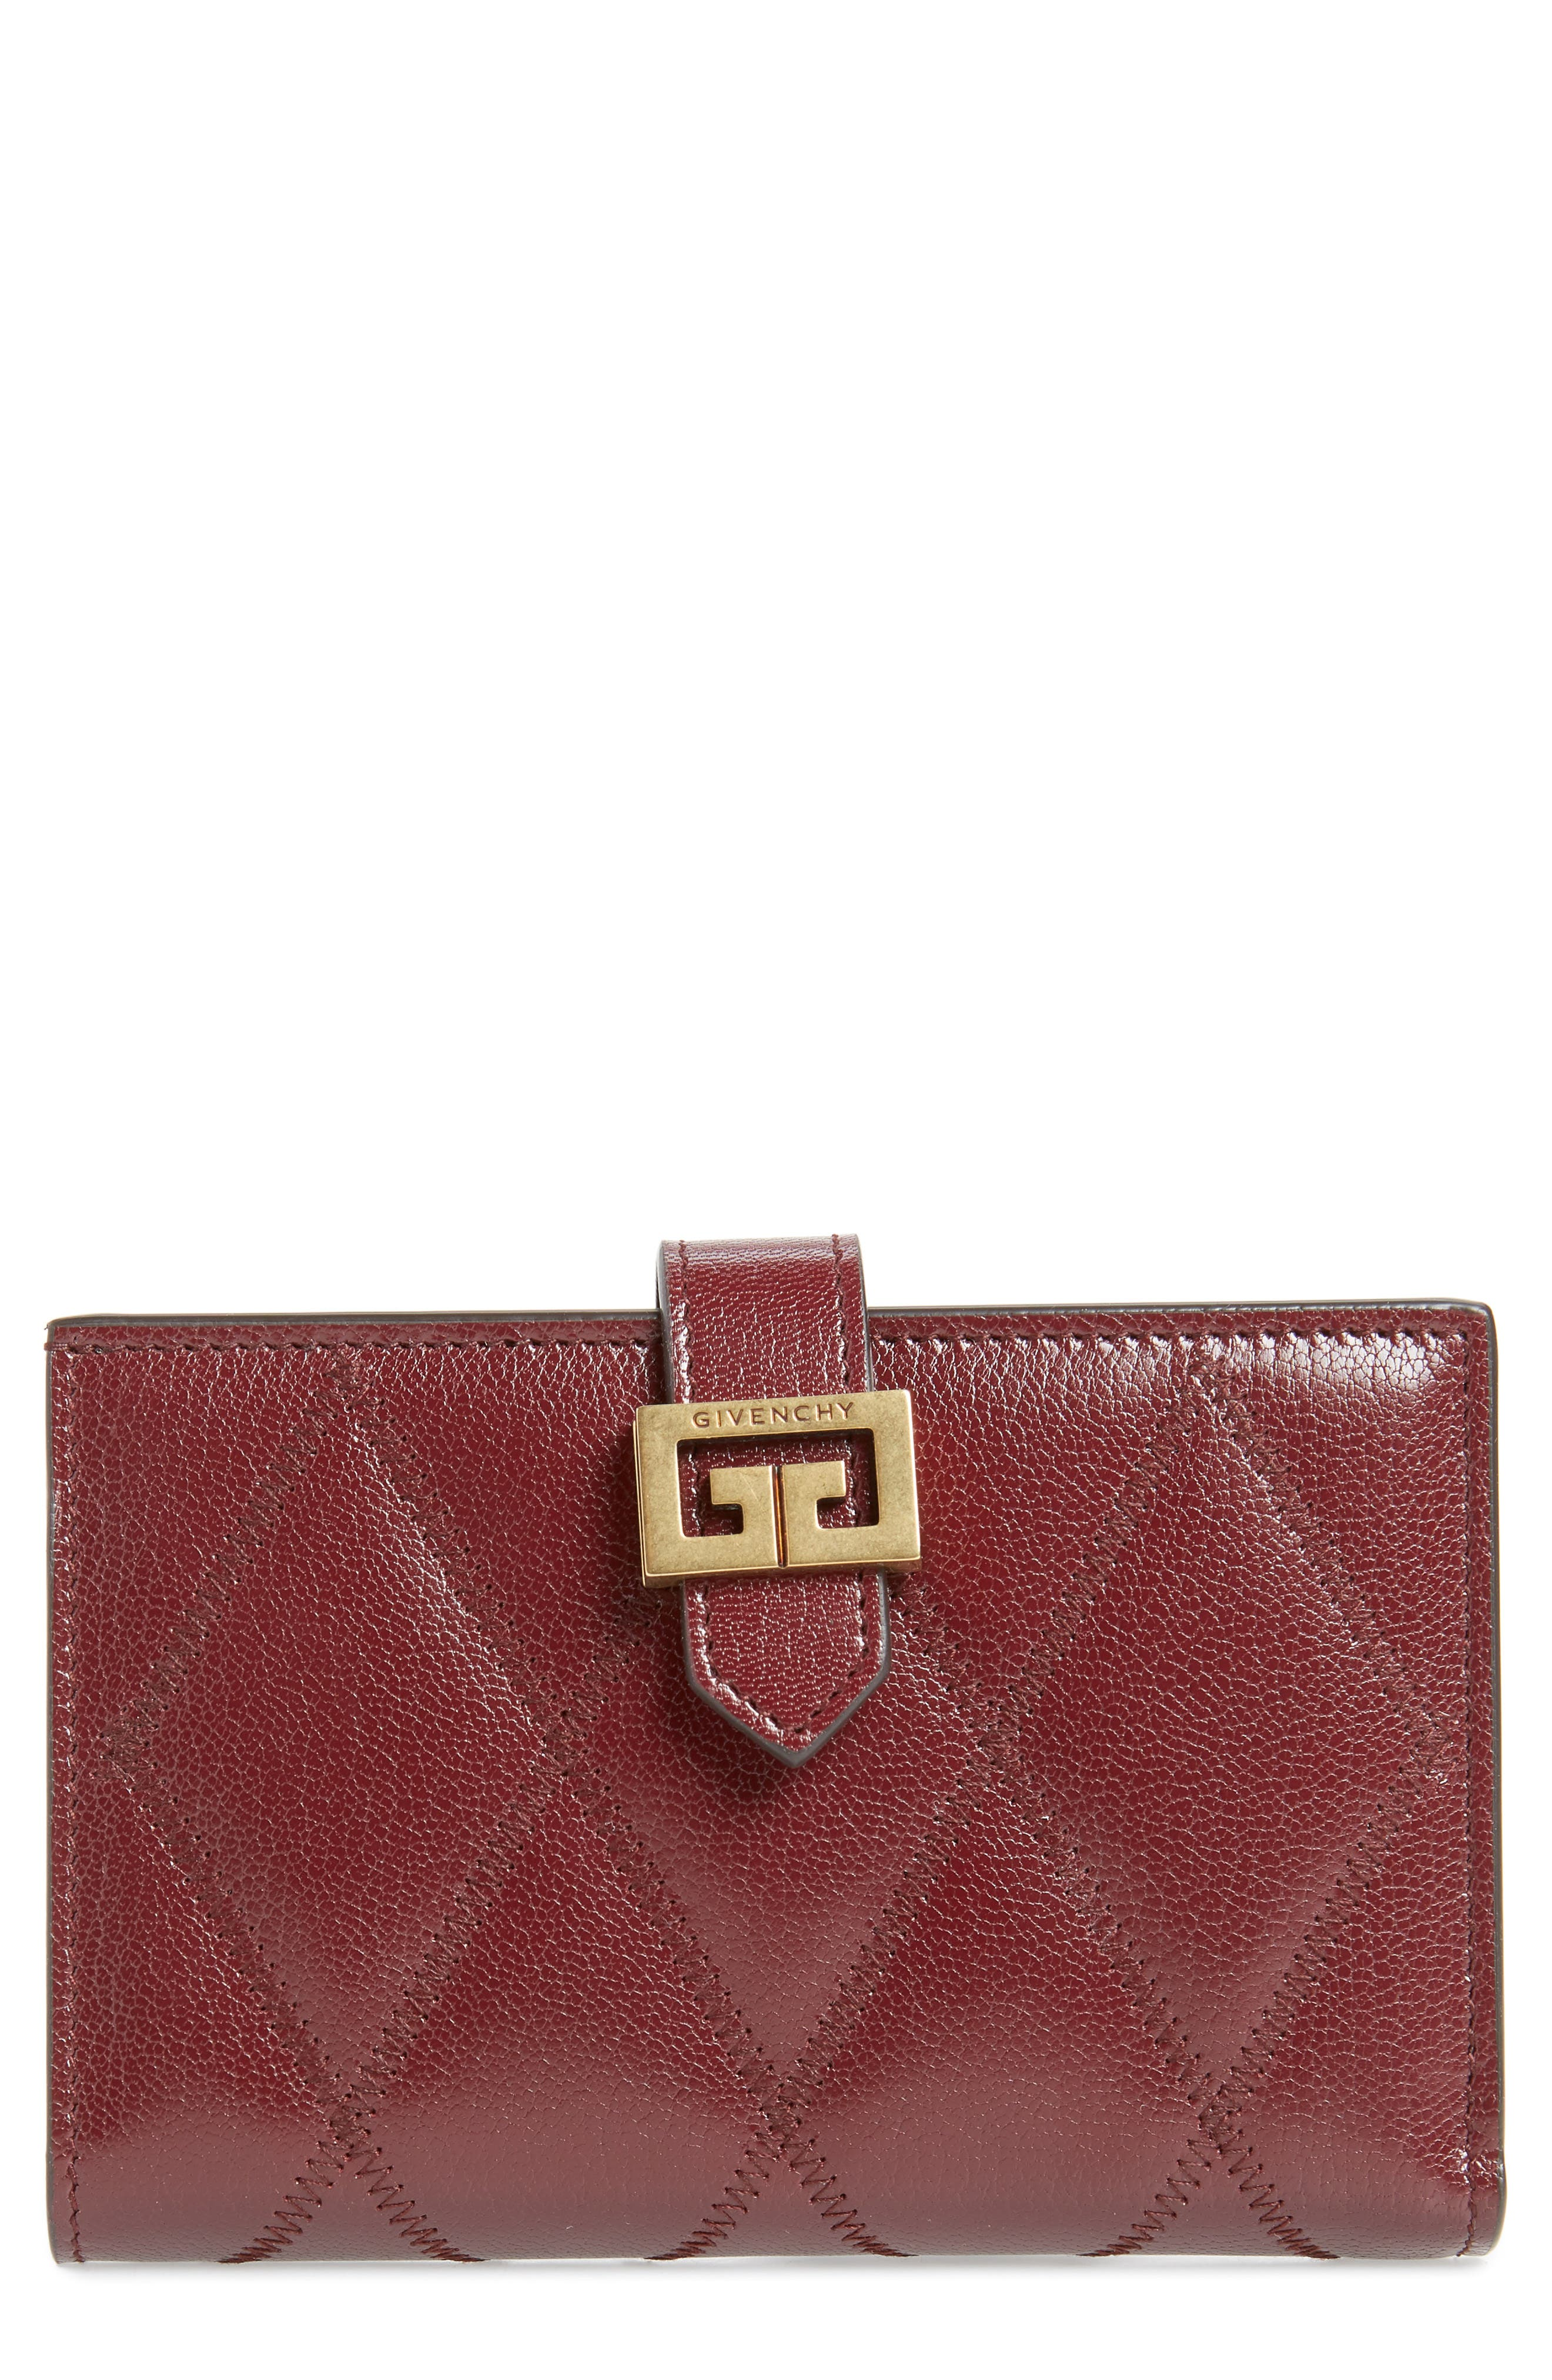 Medium GV3 Diamond Quilted Leather Wallet,                             Main thumbnail 1, color,                             AUBERGINE